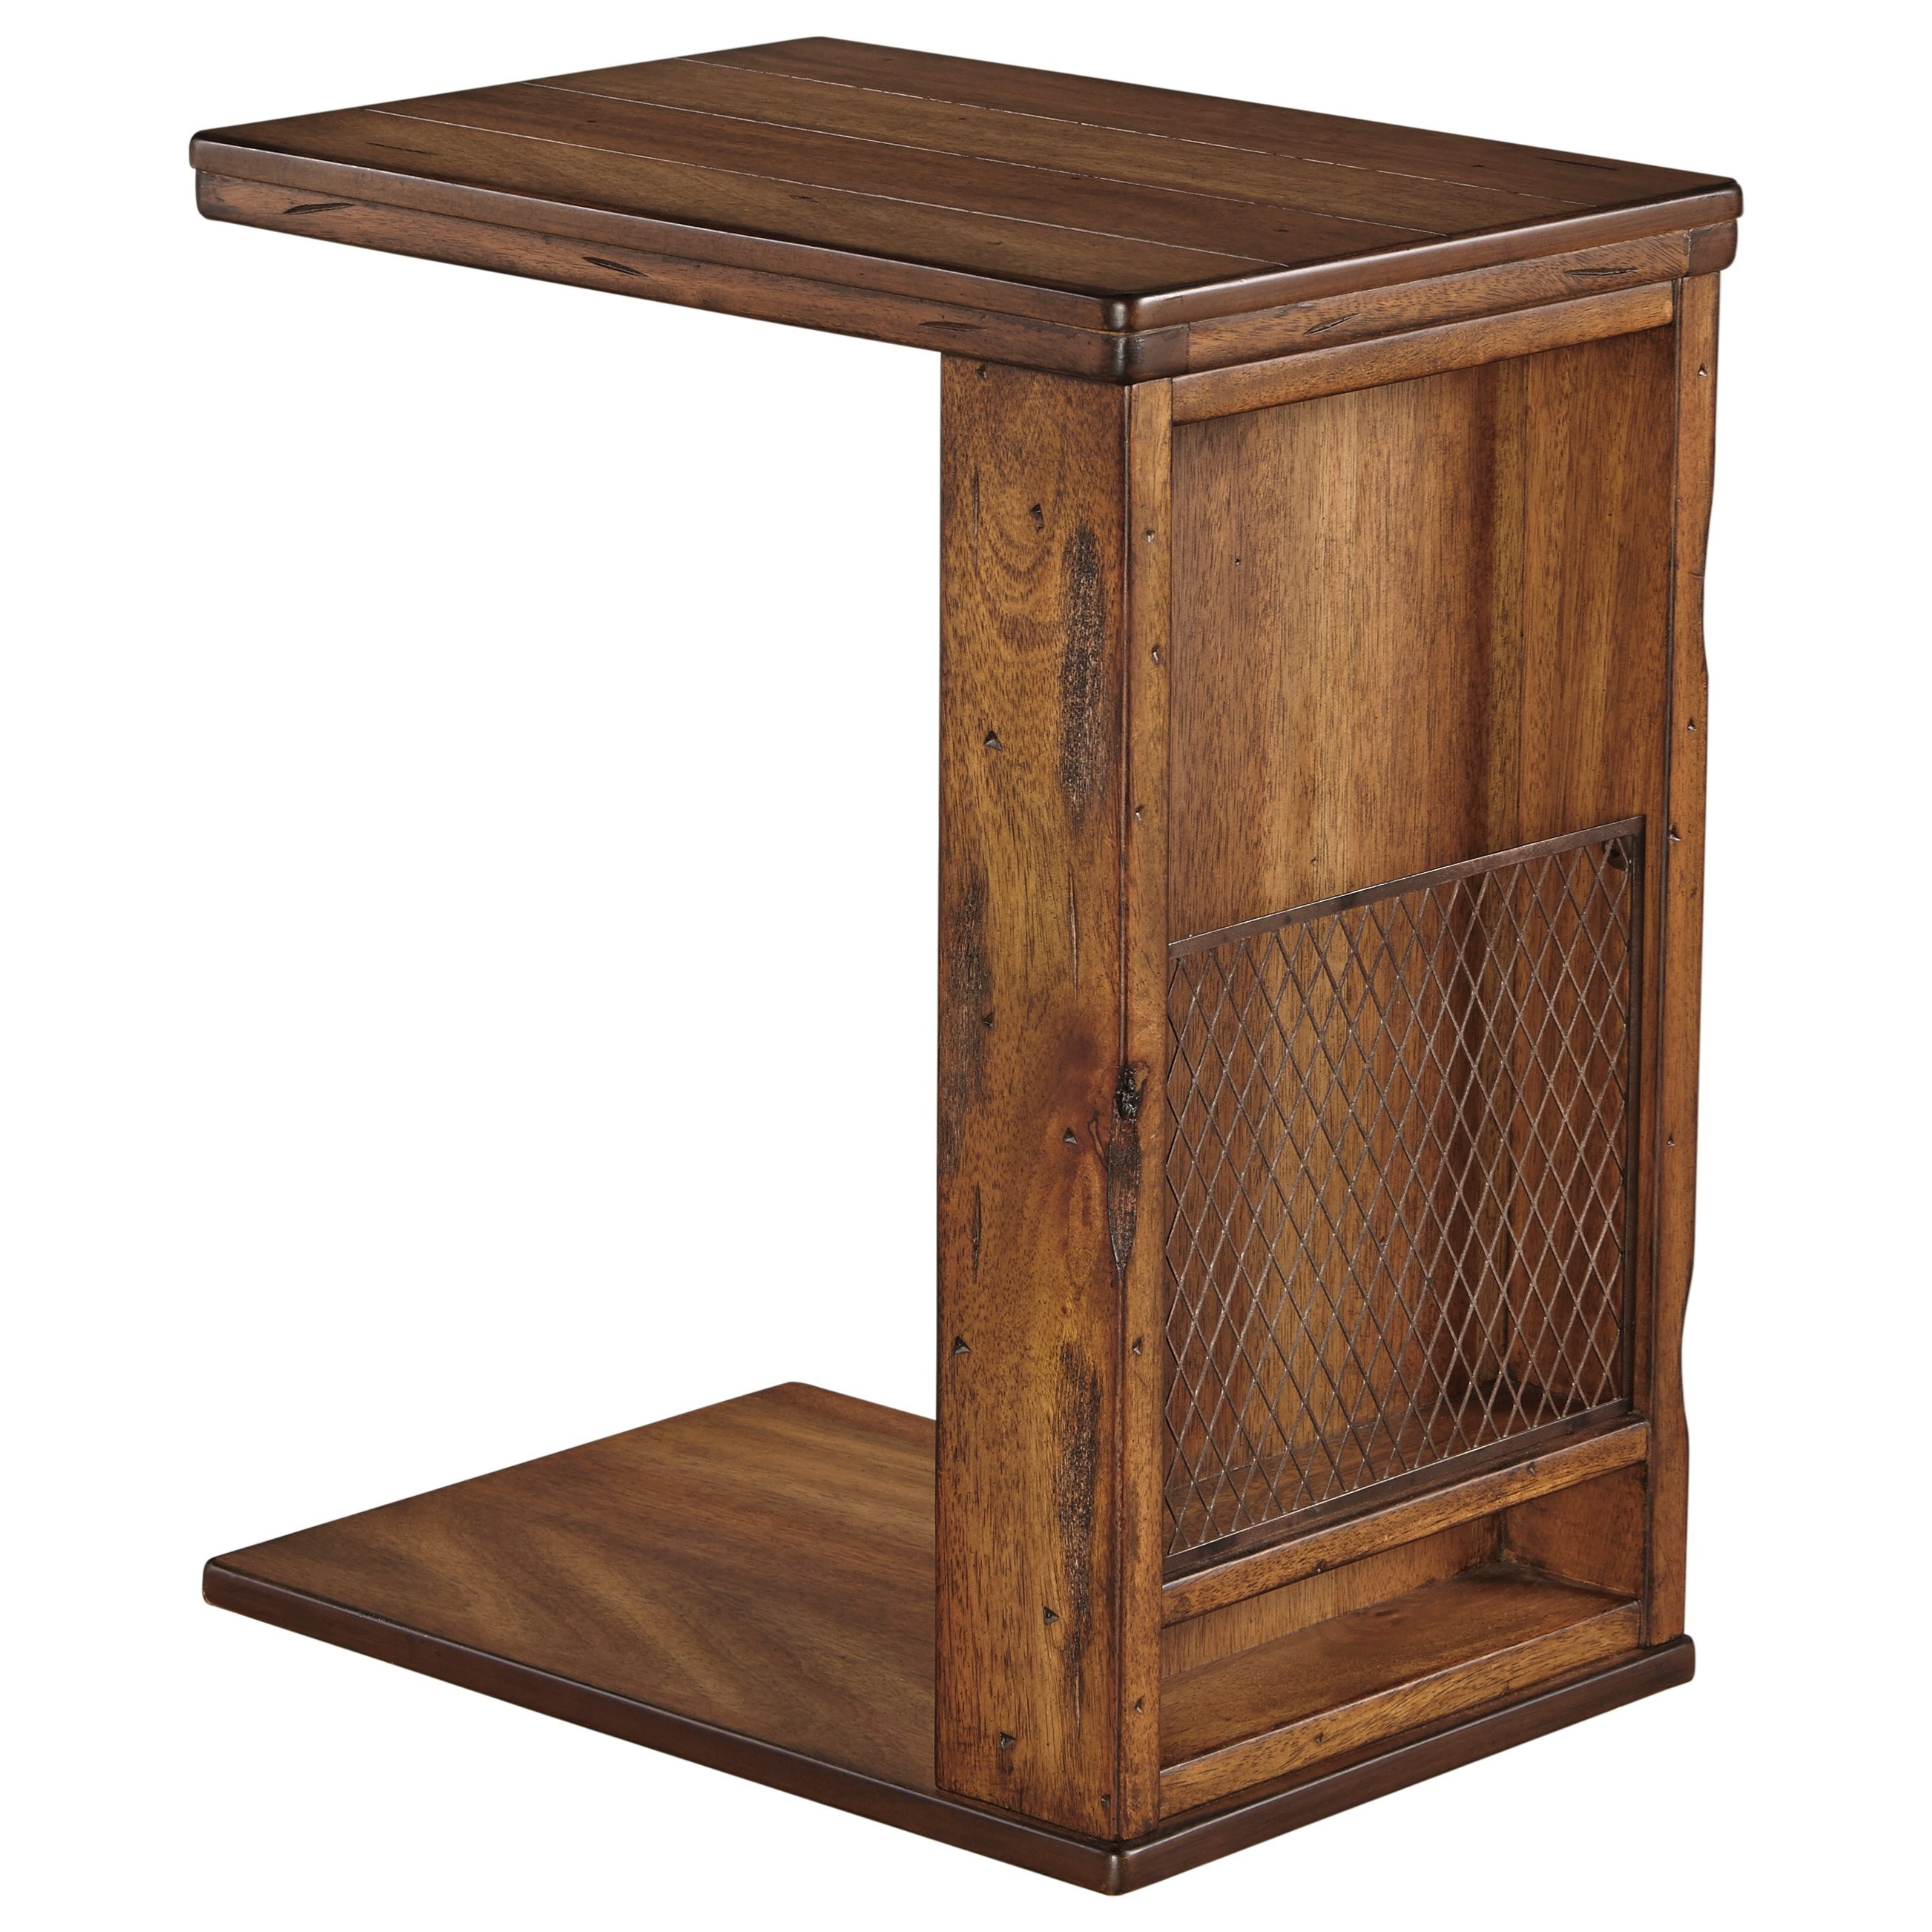 Rustic c shape chair side end table with wire mesh by